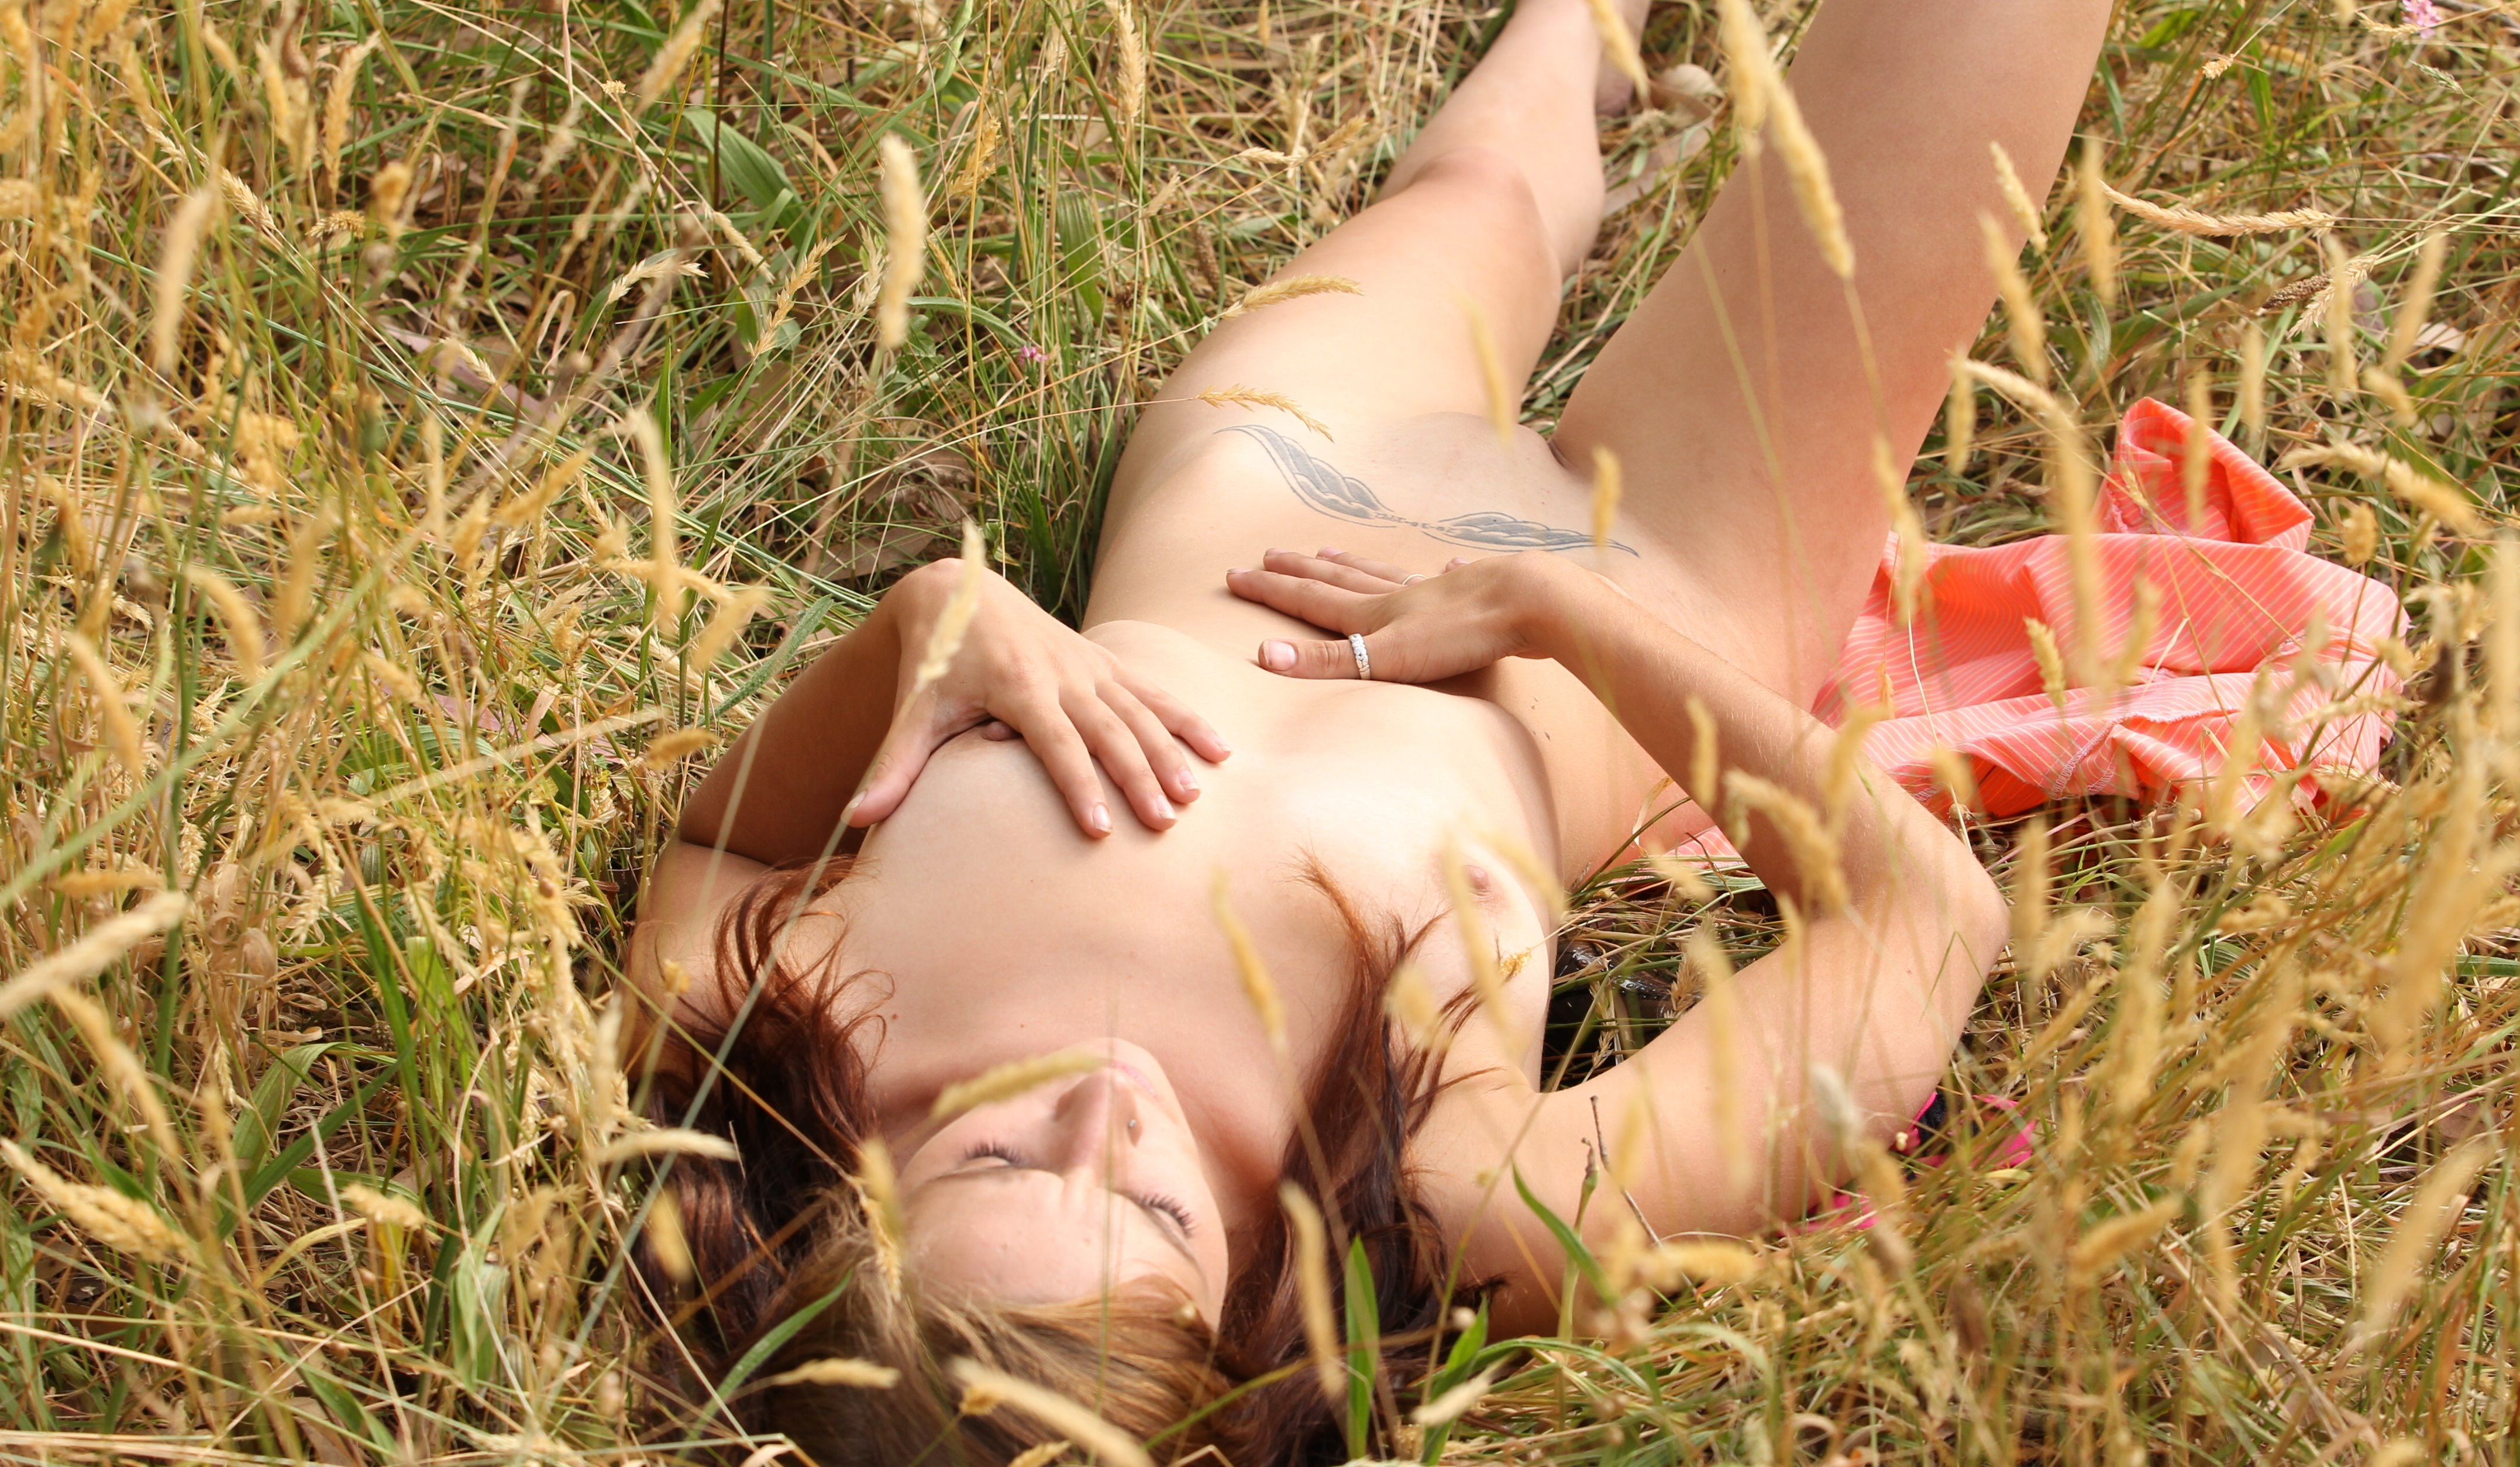 nude-girls-in-nature